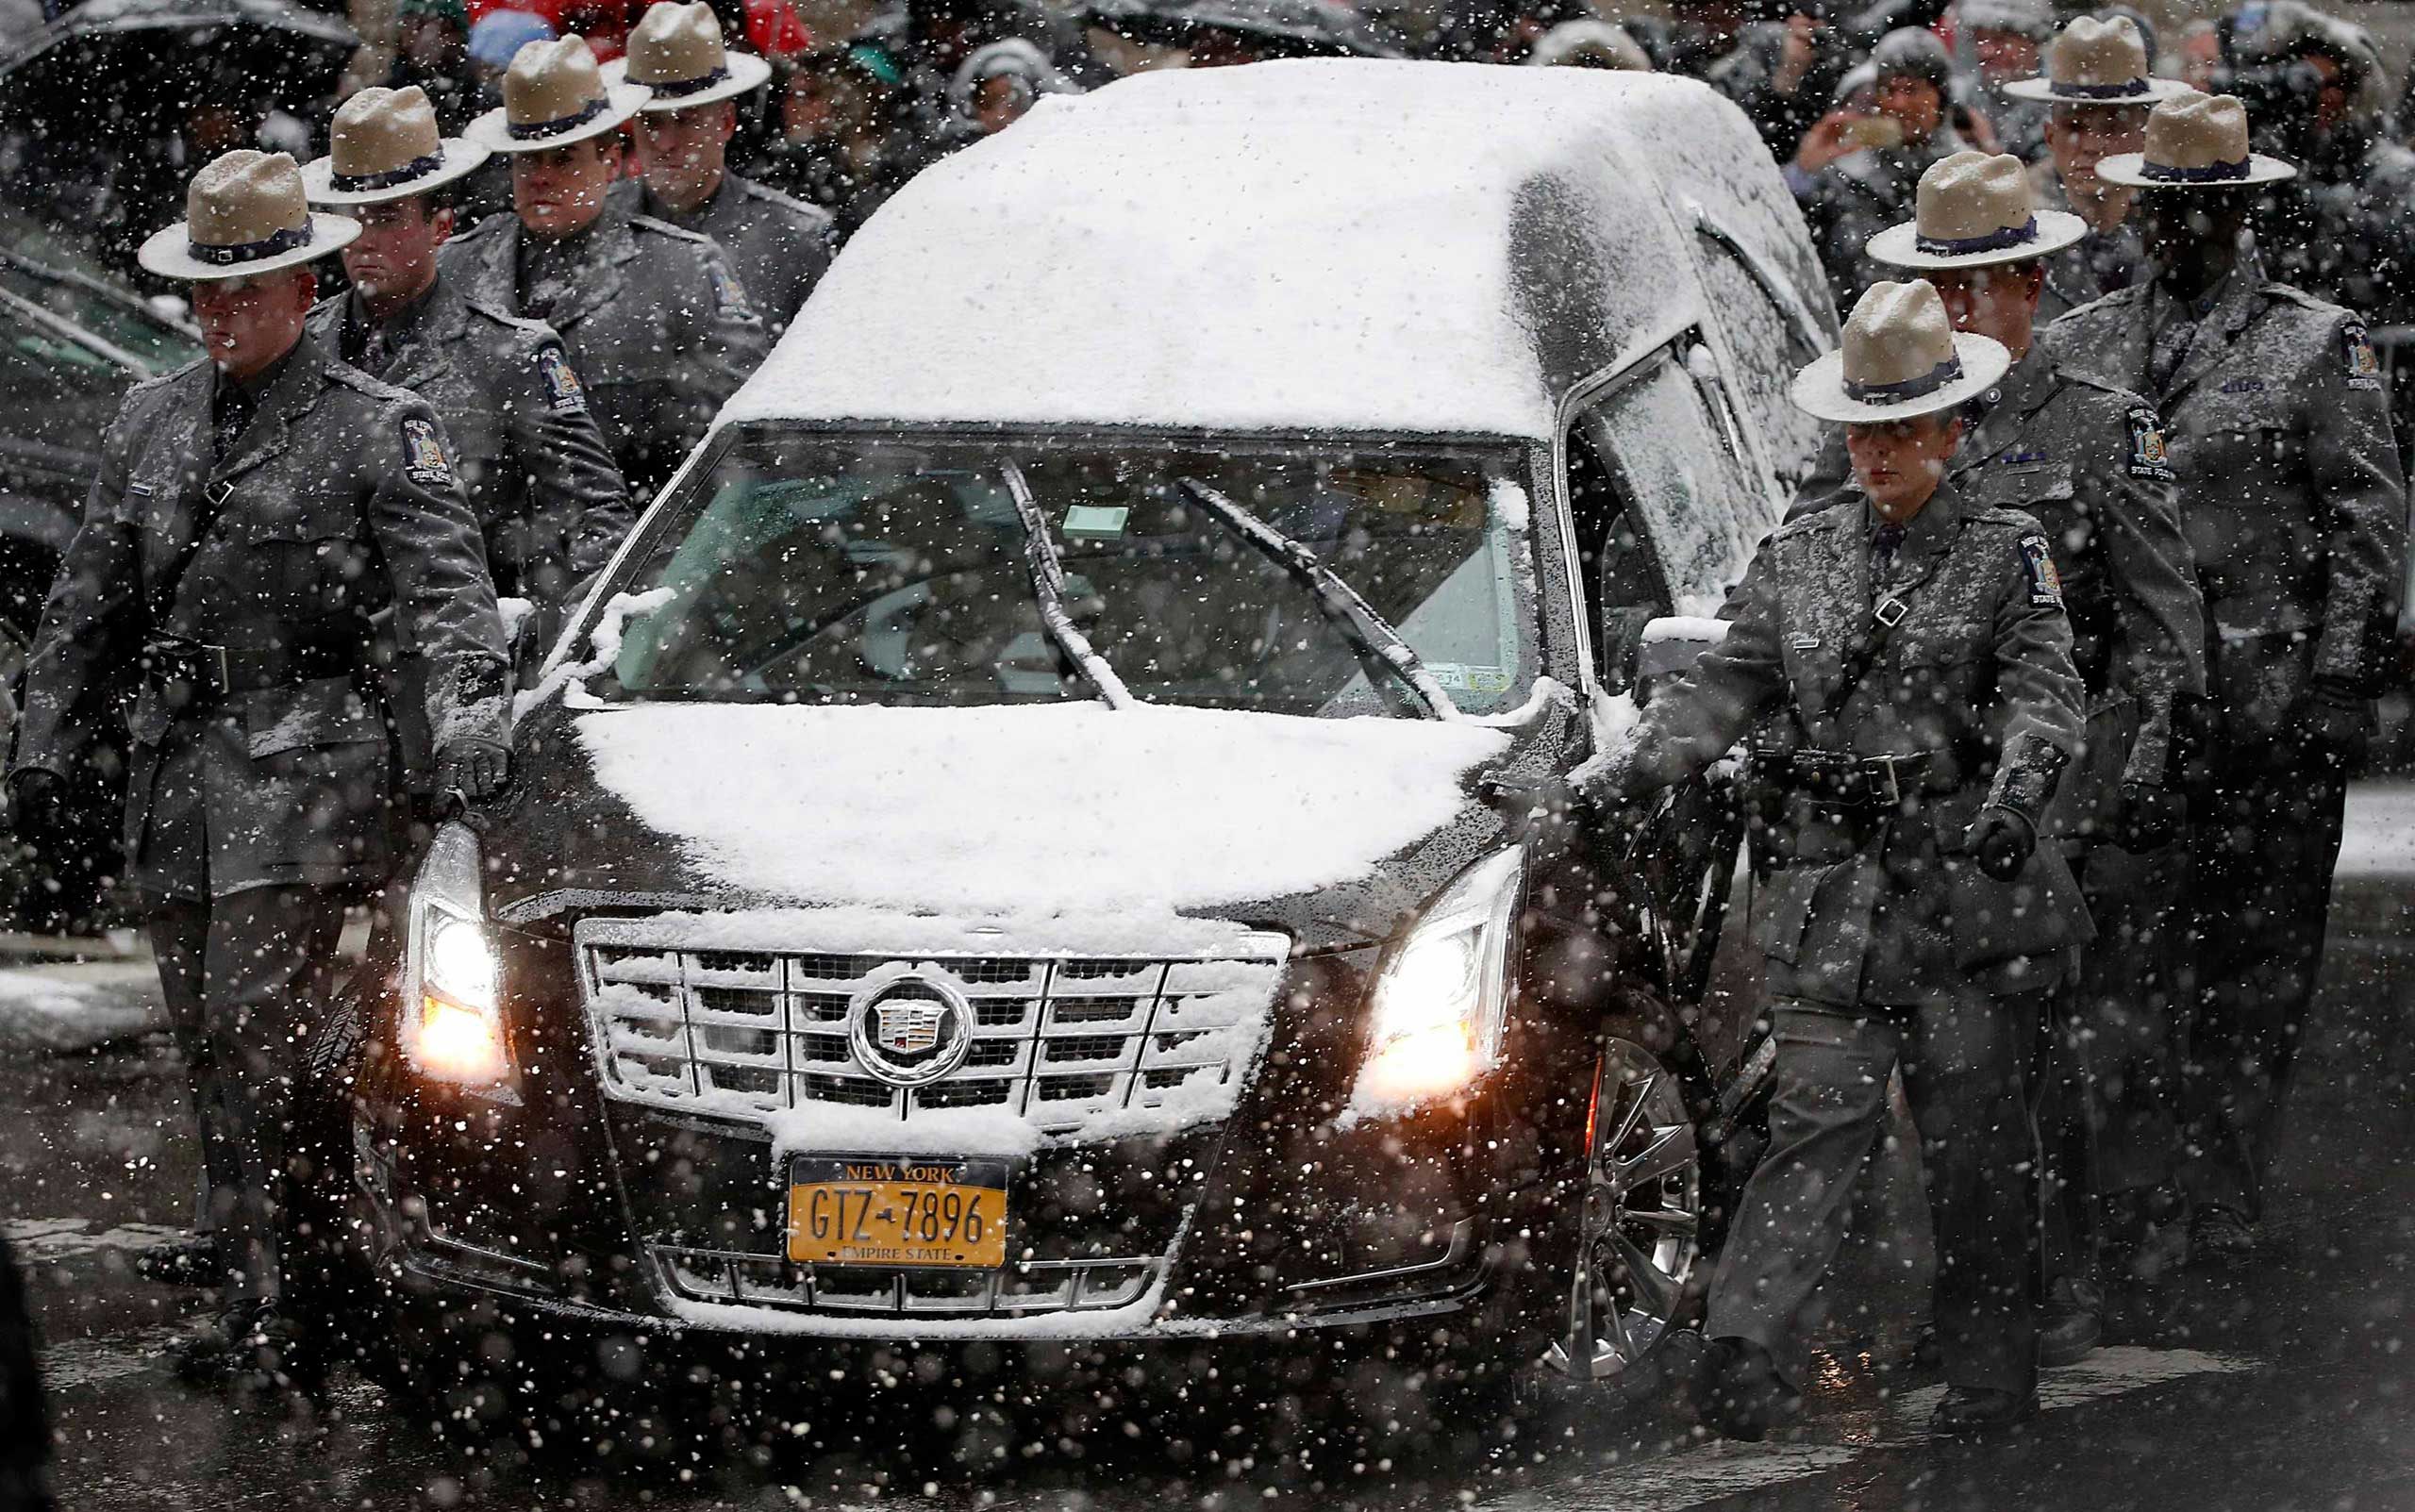 The hearse carrying the casket of former New York Governor Mario Cuomo is escorted by members of the New York State Police as it arrives at St. Ignatius Loyola Church for funeral service in New York on Jan. 6, 2015.